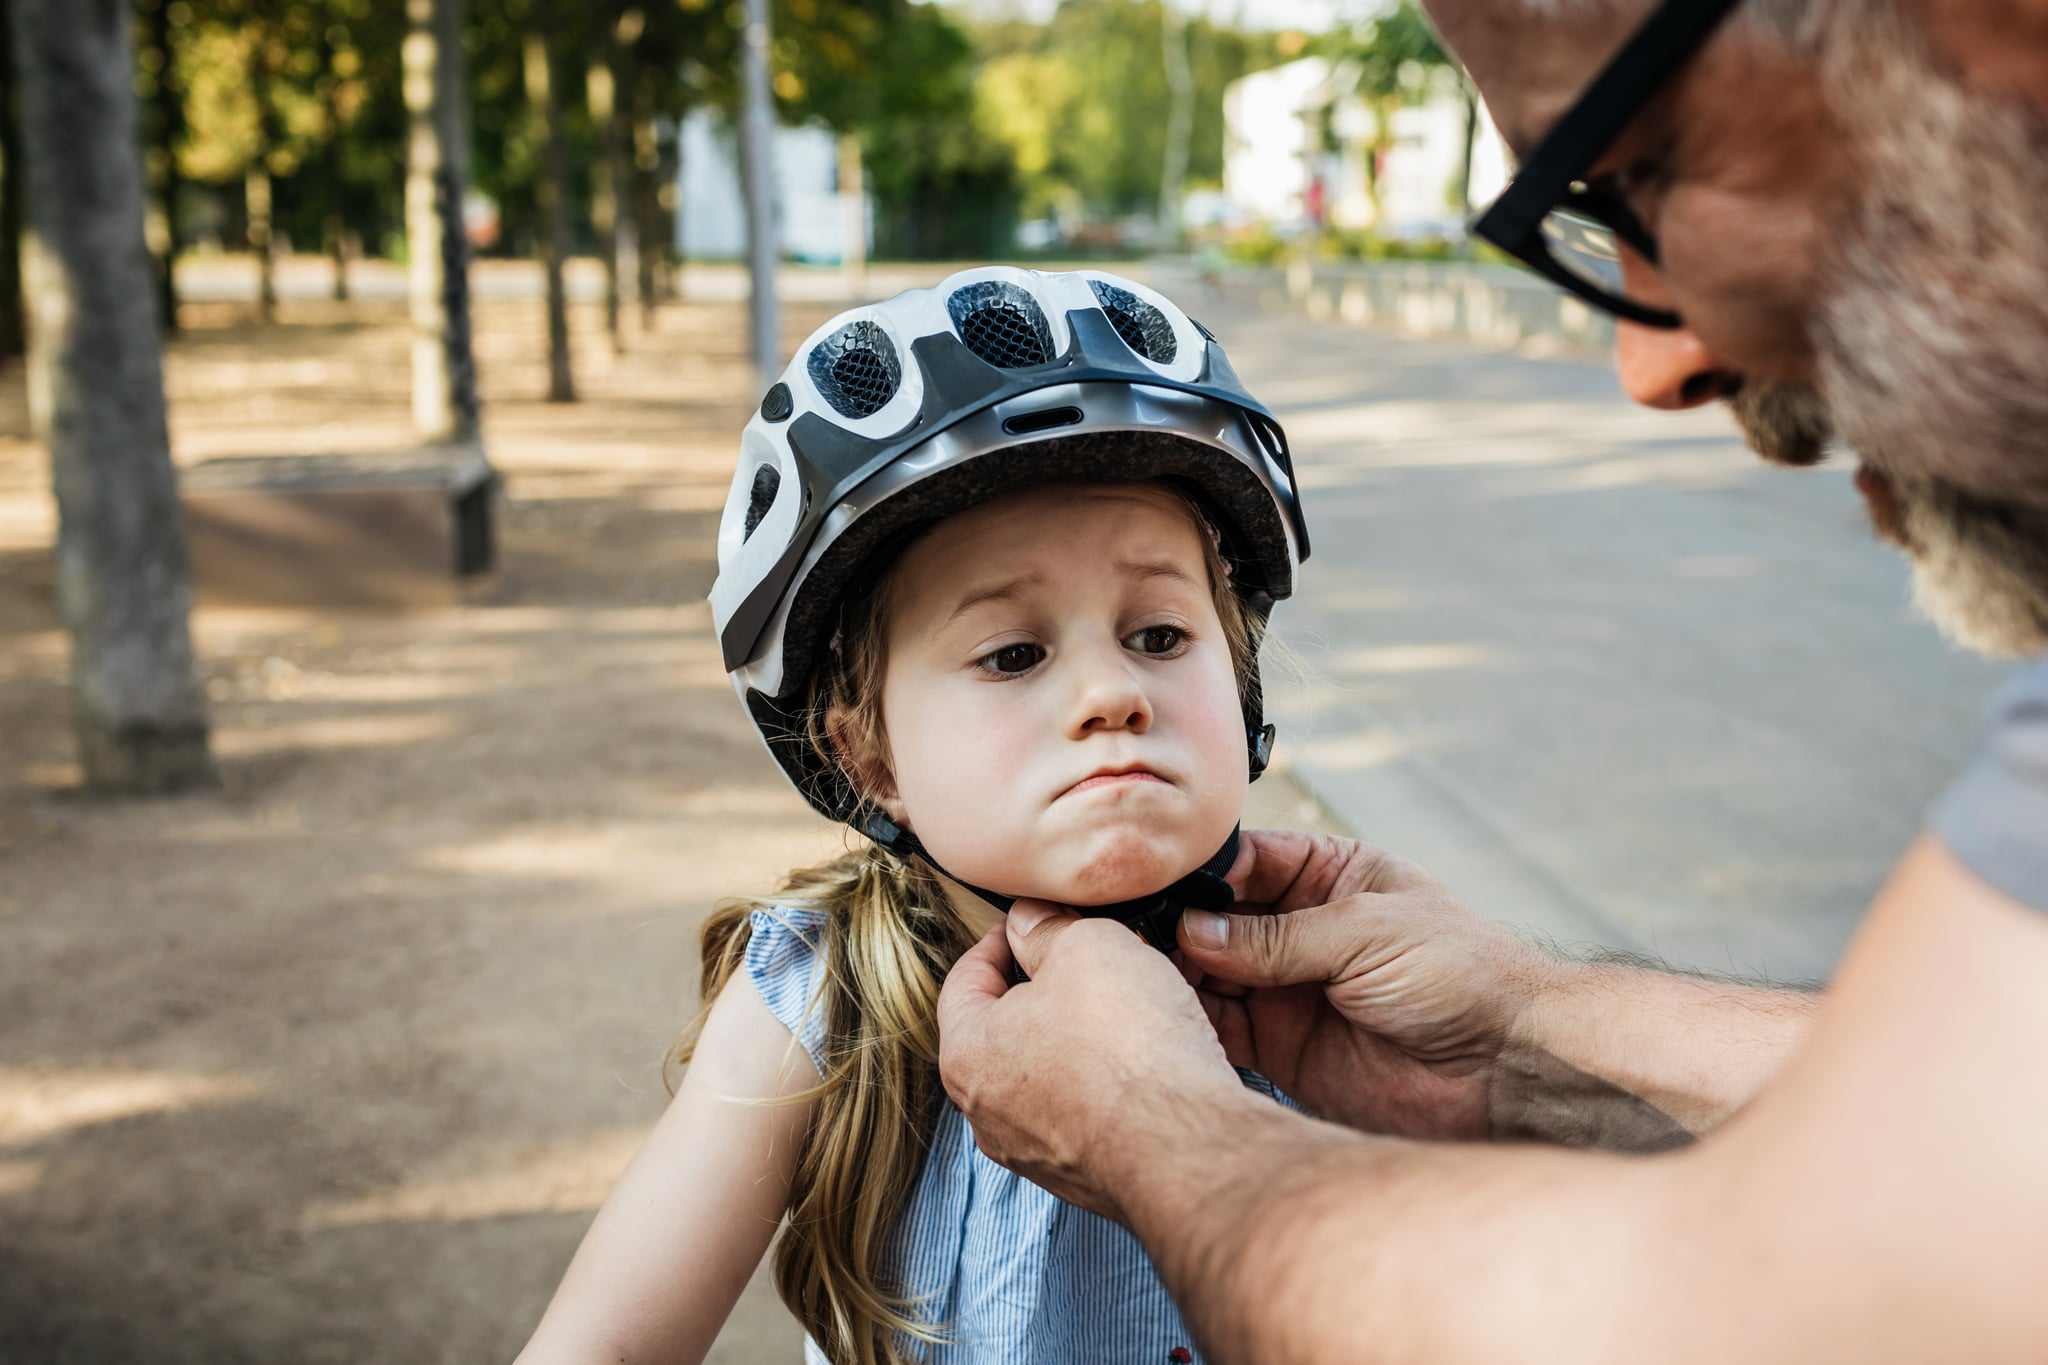 A grandpa carefully doing up his granddaughters crash helmet while on a day out at the park together.